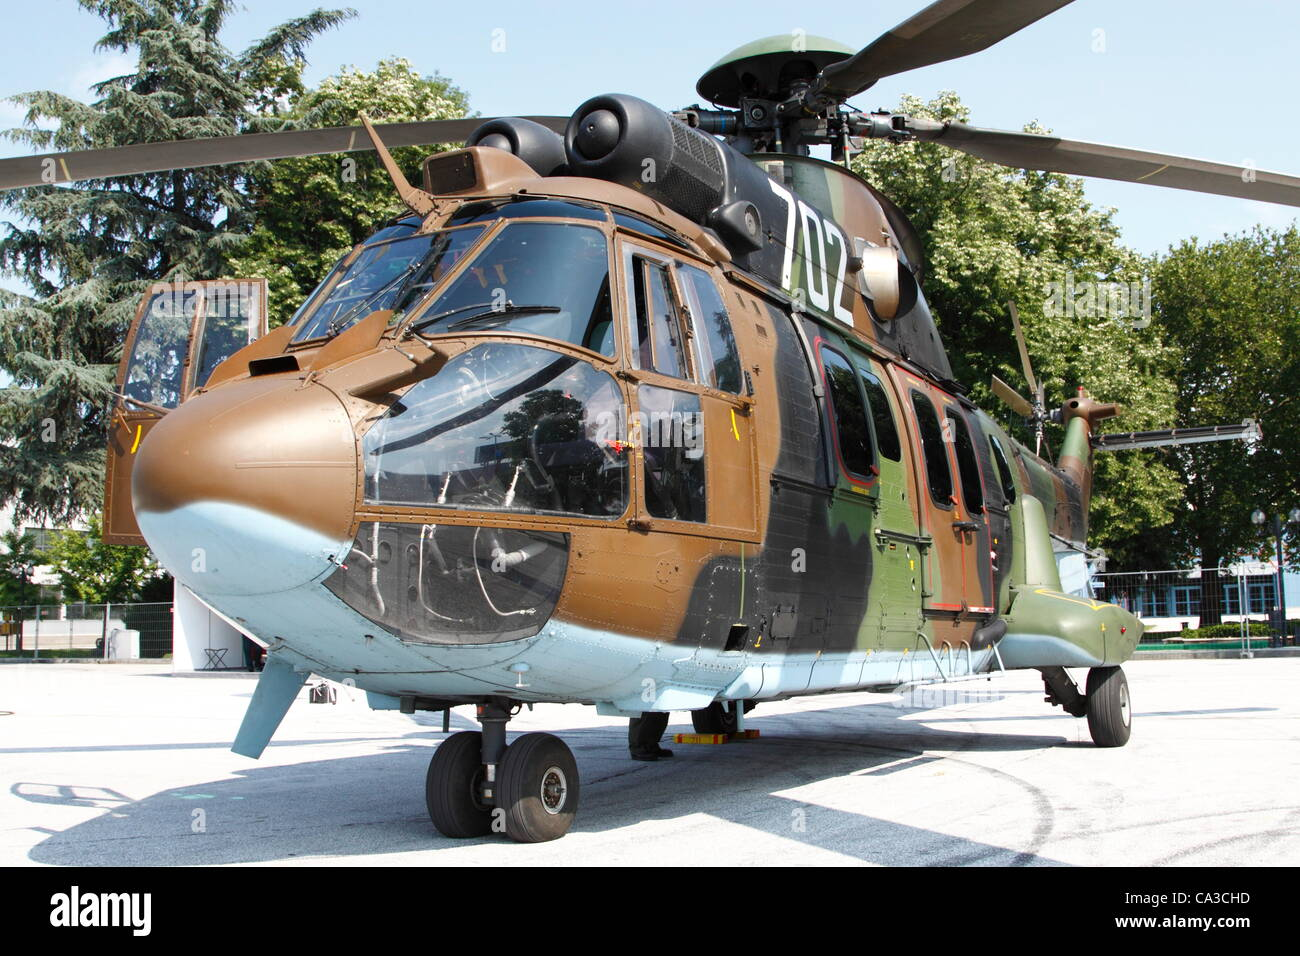 A brand new Eurocopter Cougar, used as medium utility helicopter in the Bulgarian Air Force. Bulgaria operates 12 - Stock Image